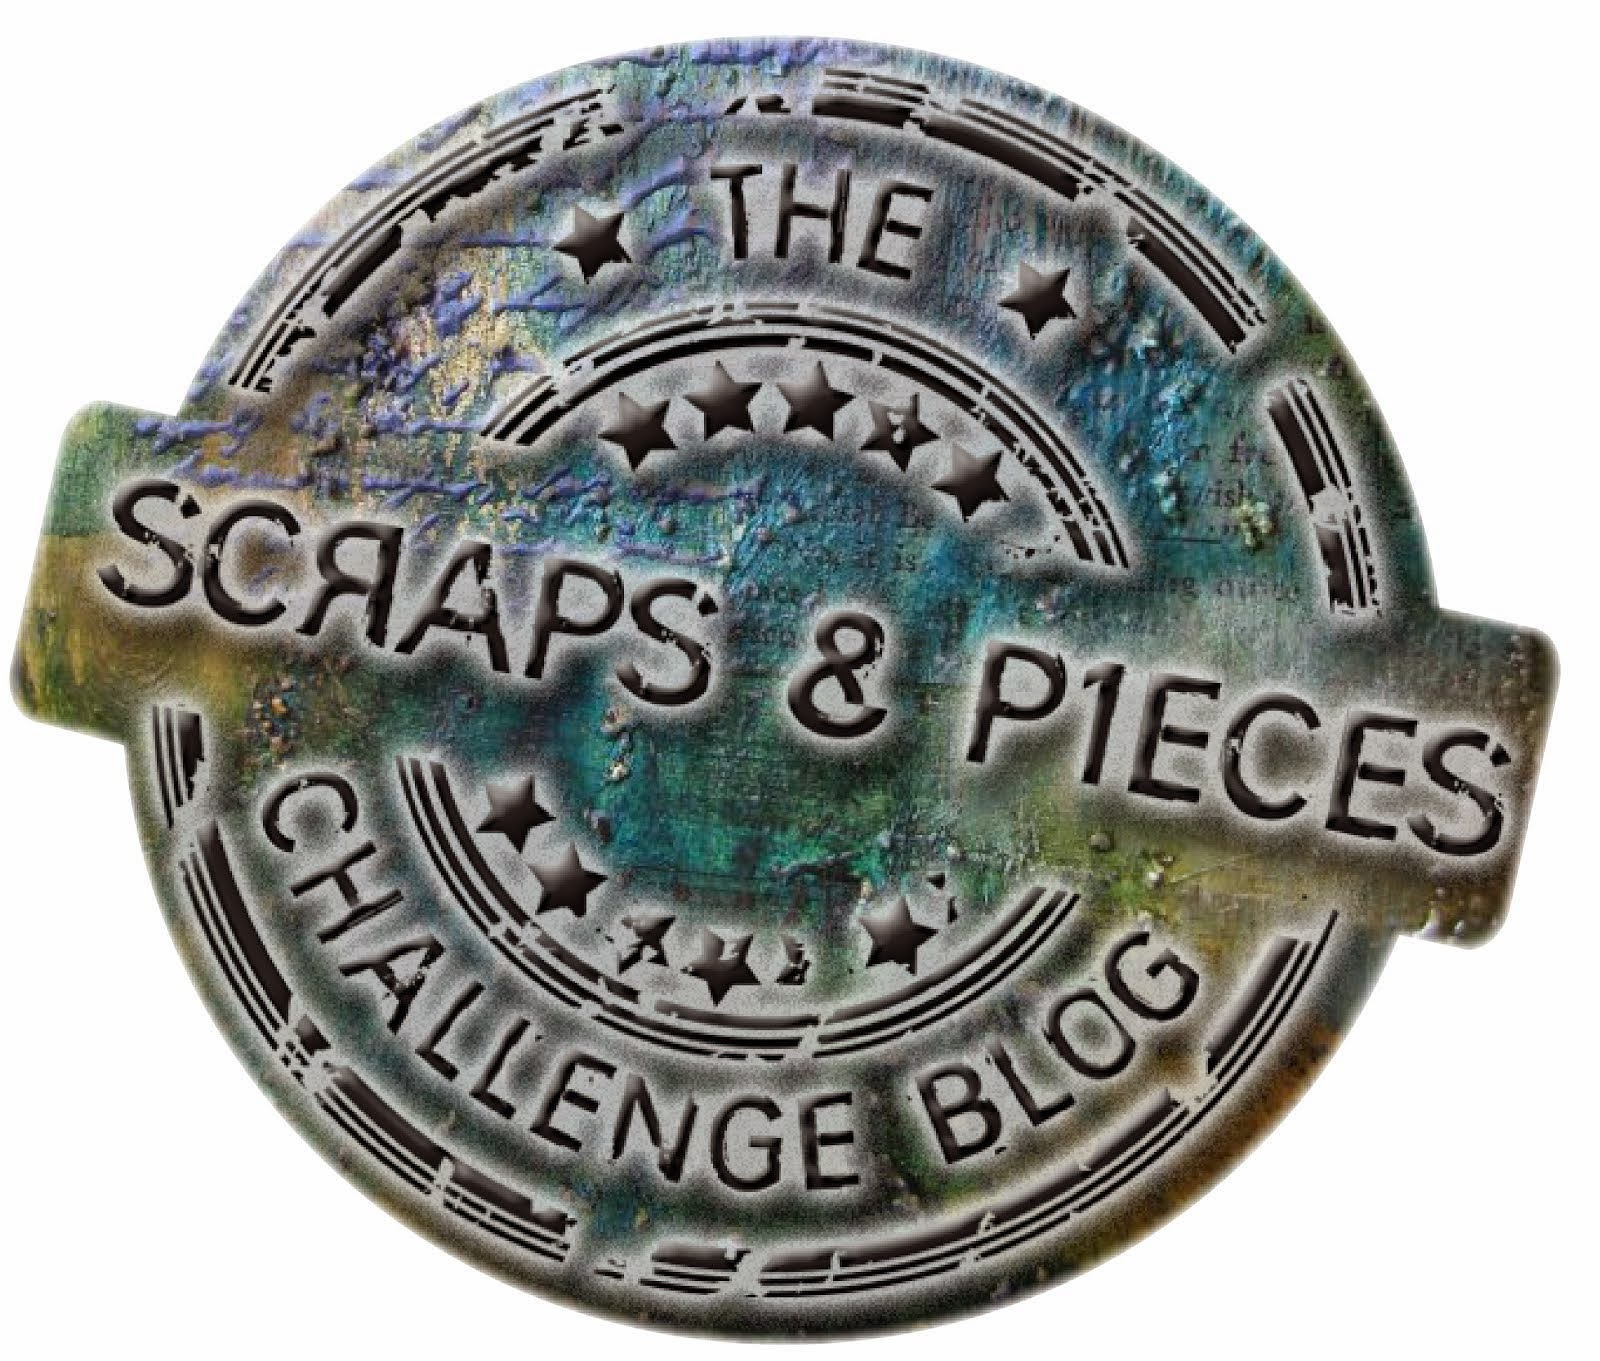 Featured at Scraps`n`Pieces!